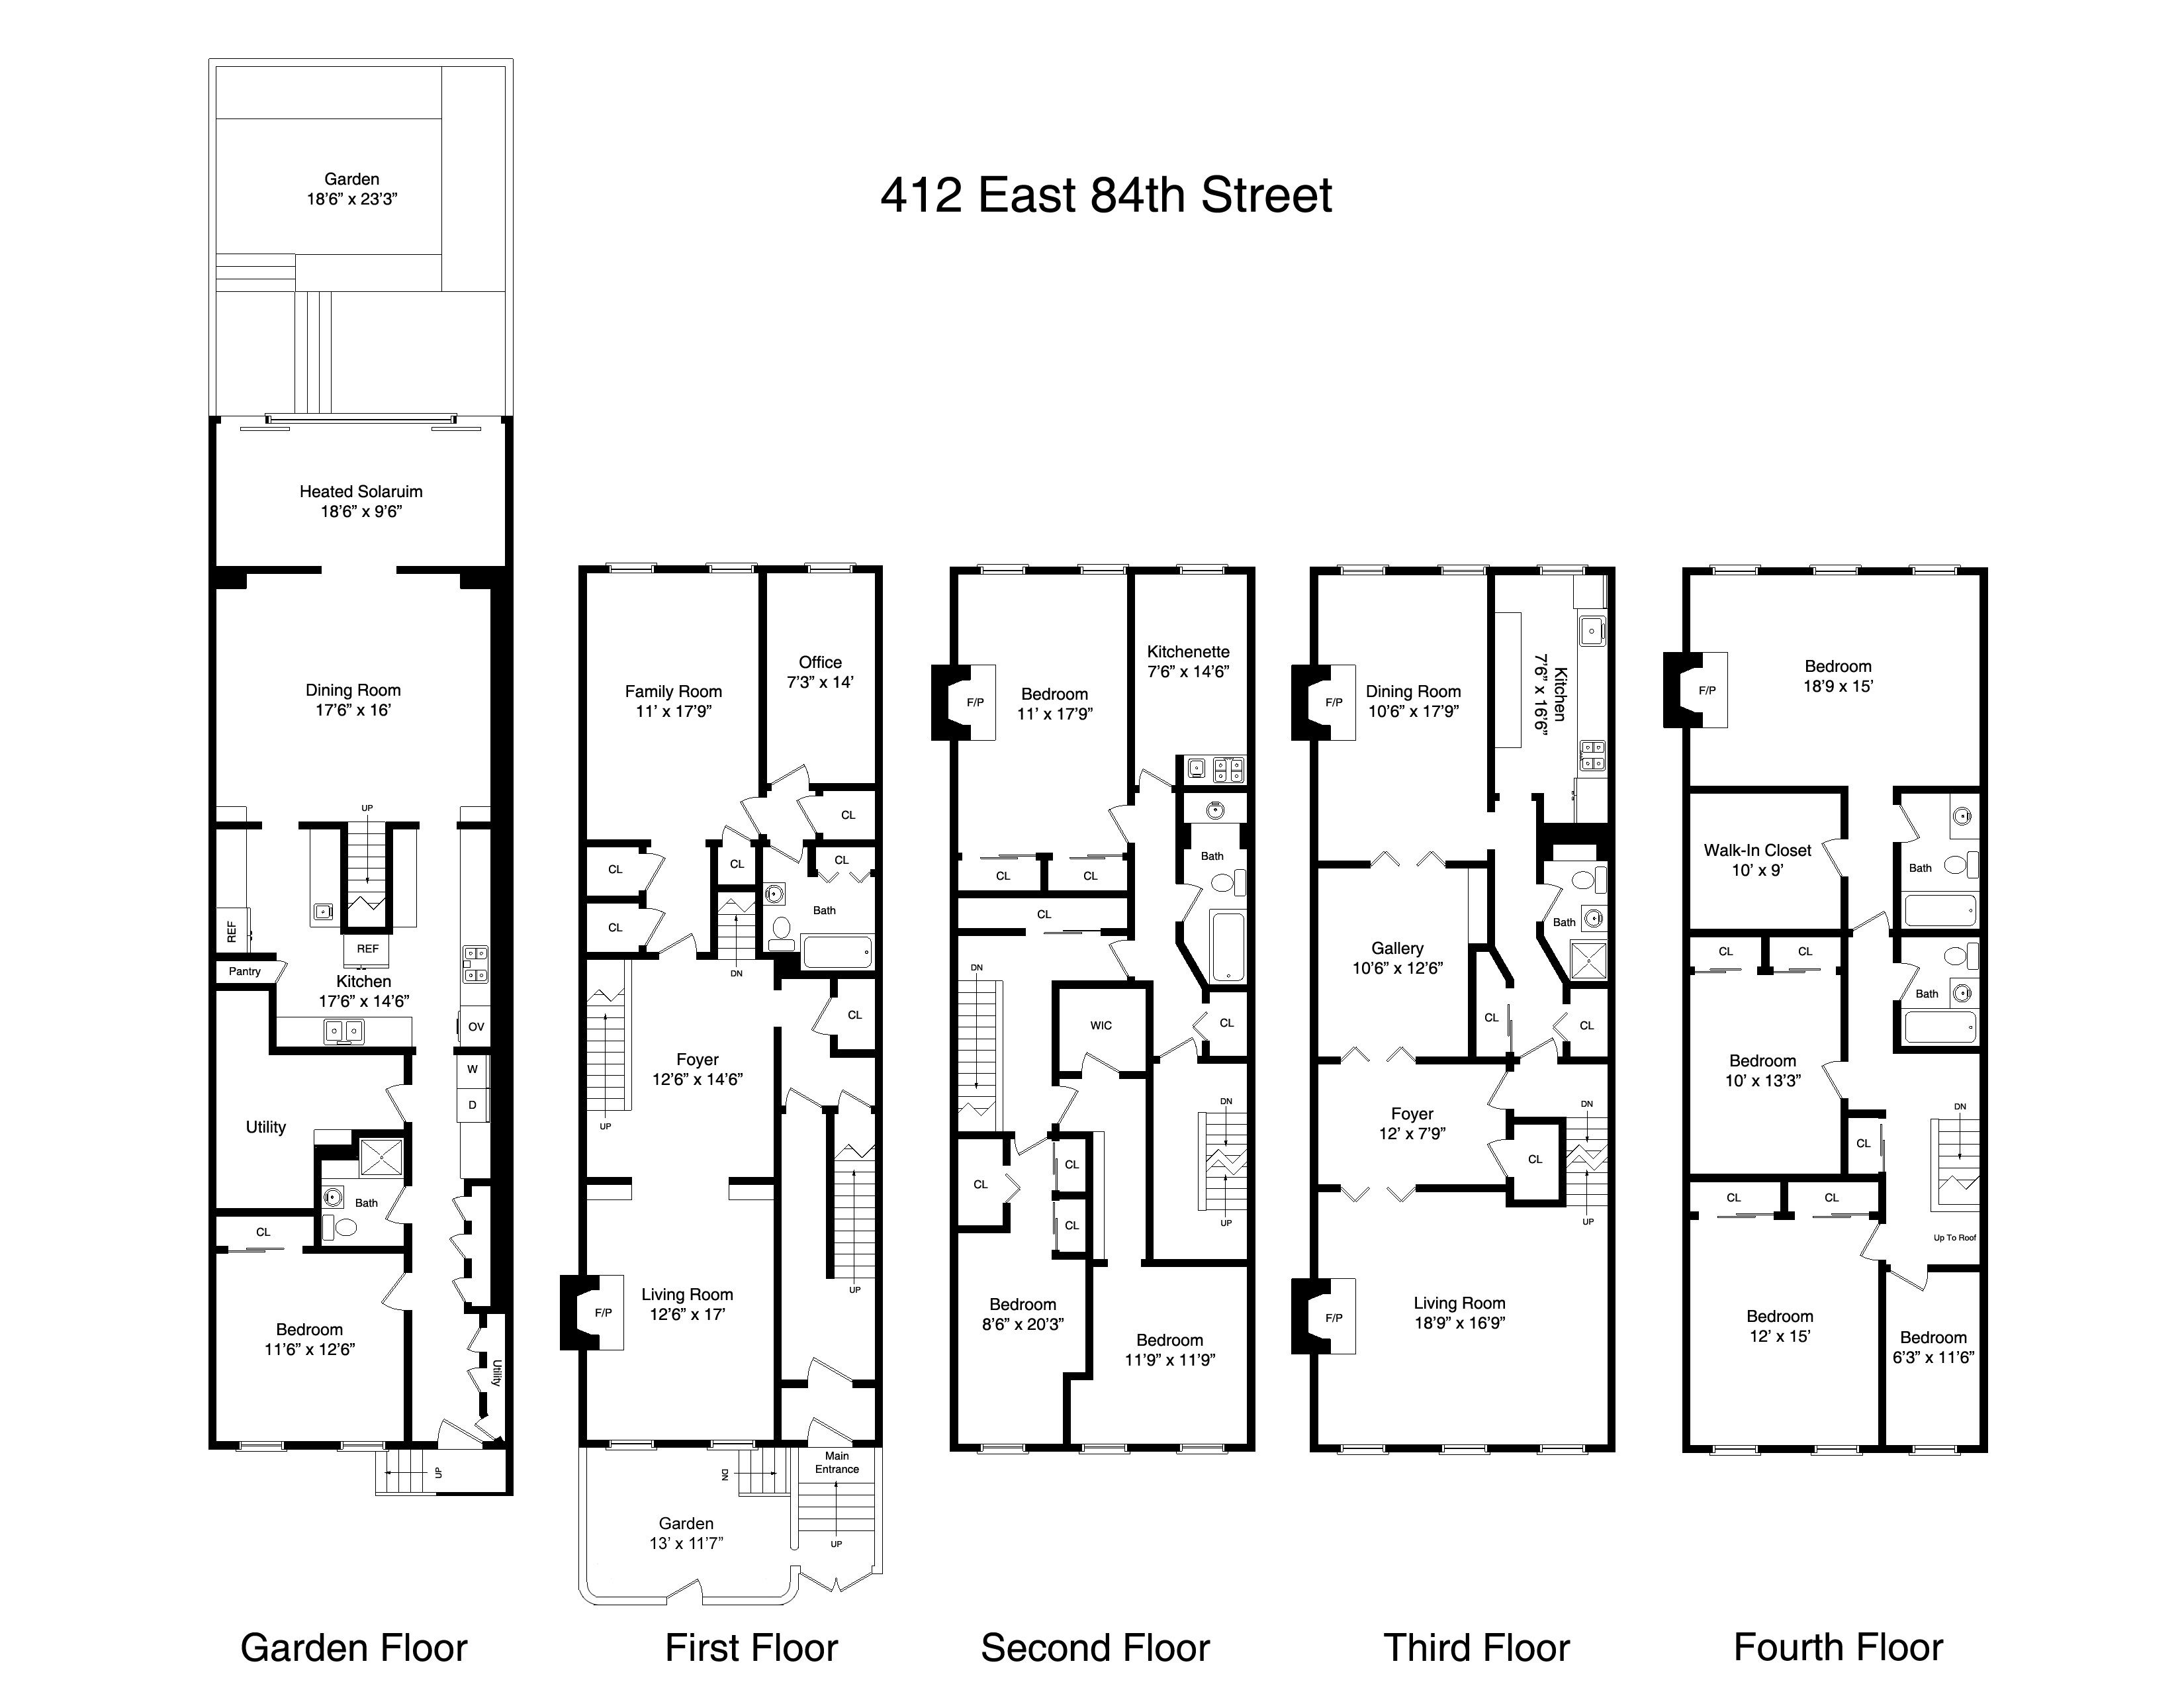 Homely Design 12 New York Home Plans Style House Floor Plans New York Brownstone How To Plan